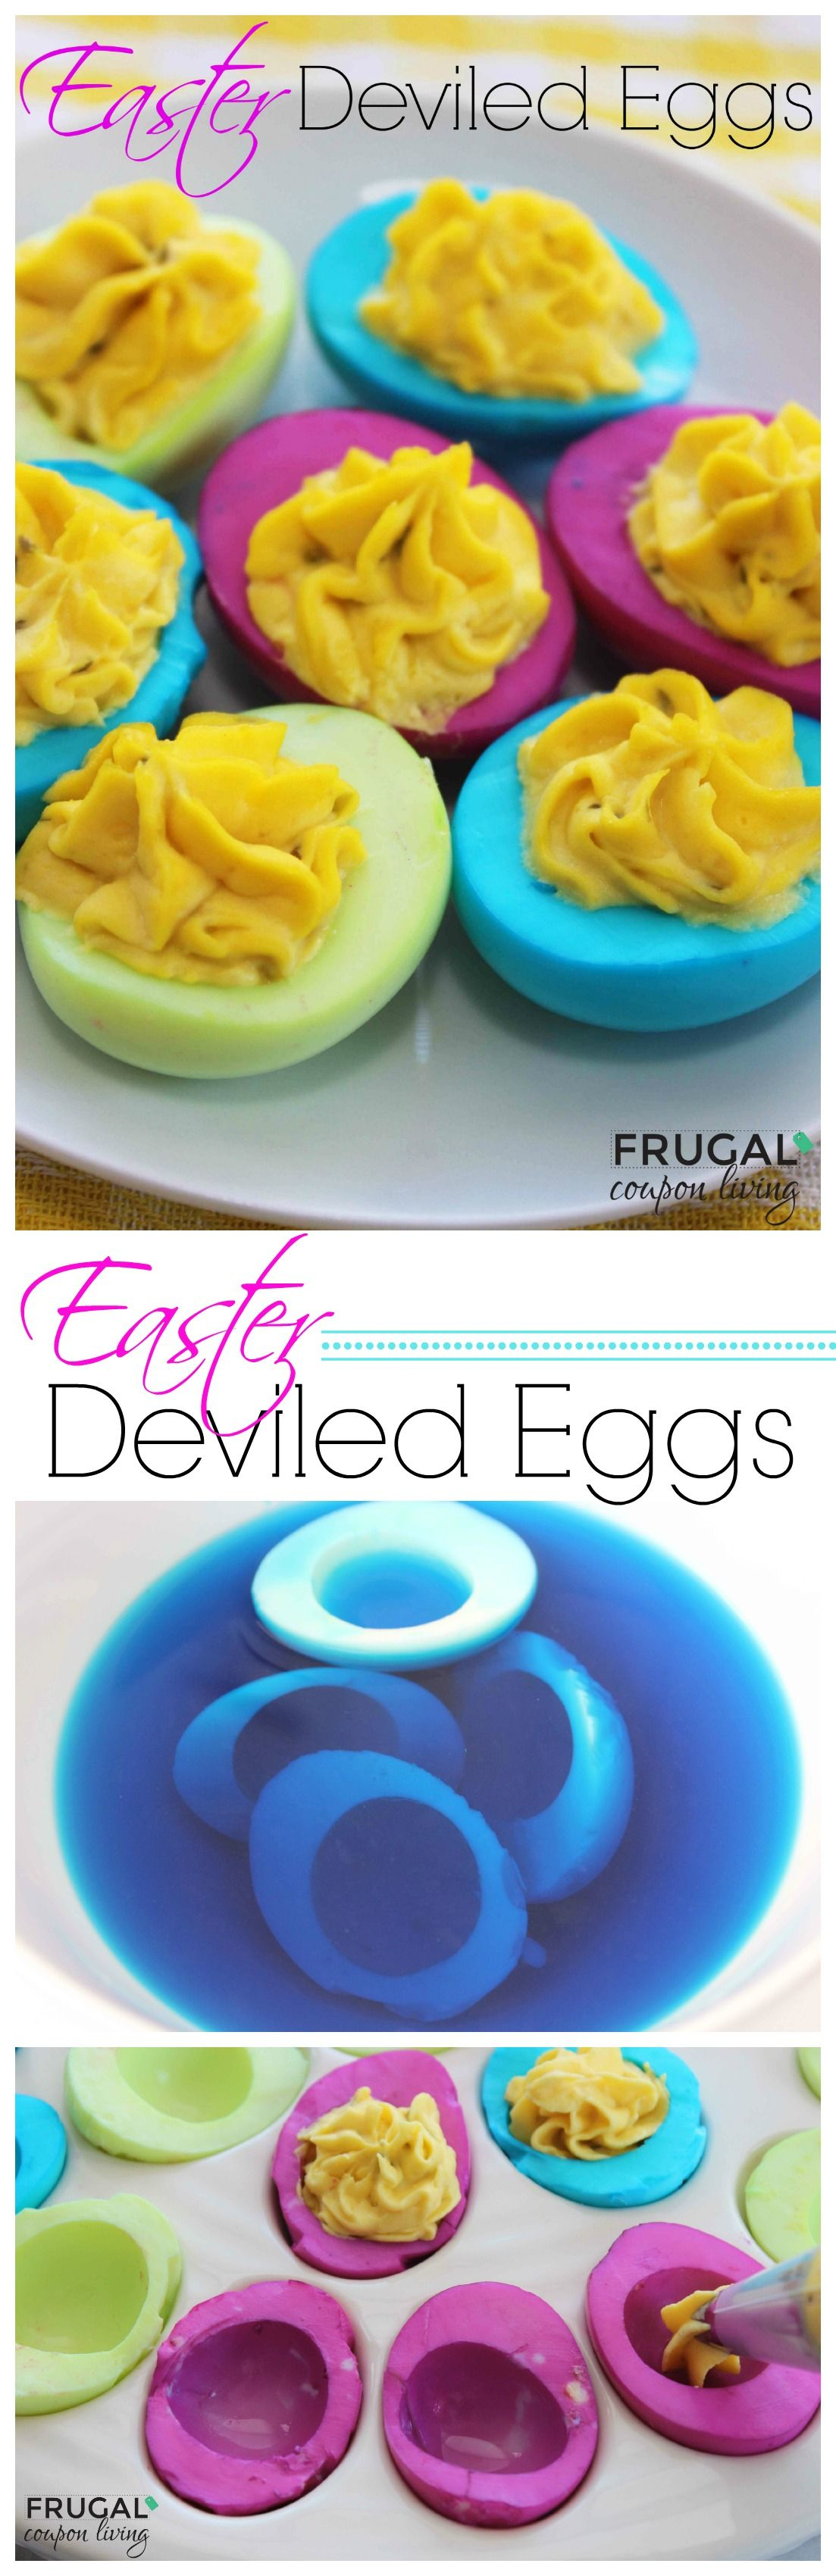 Easter deviled eggs tutorial on how to color the egg whites of easter deviled eggs tutorial on how to color the egg whites of your hard boiled eggs egg recipe idea on frugal coupon living forumfinder Images